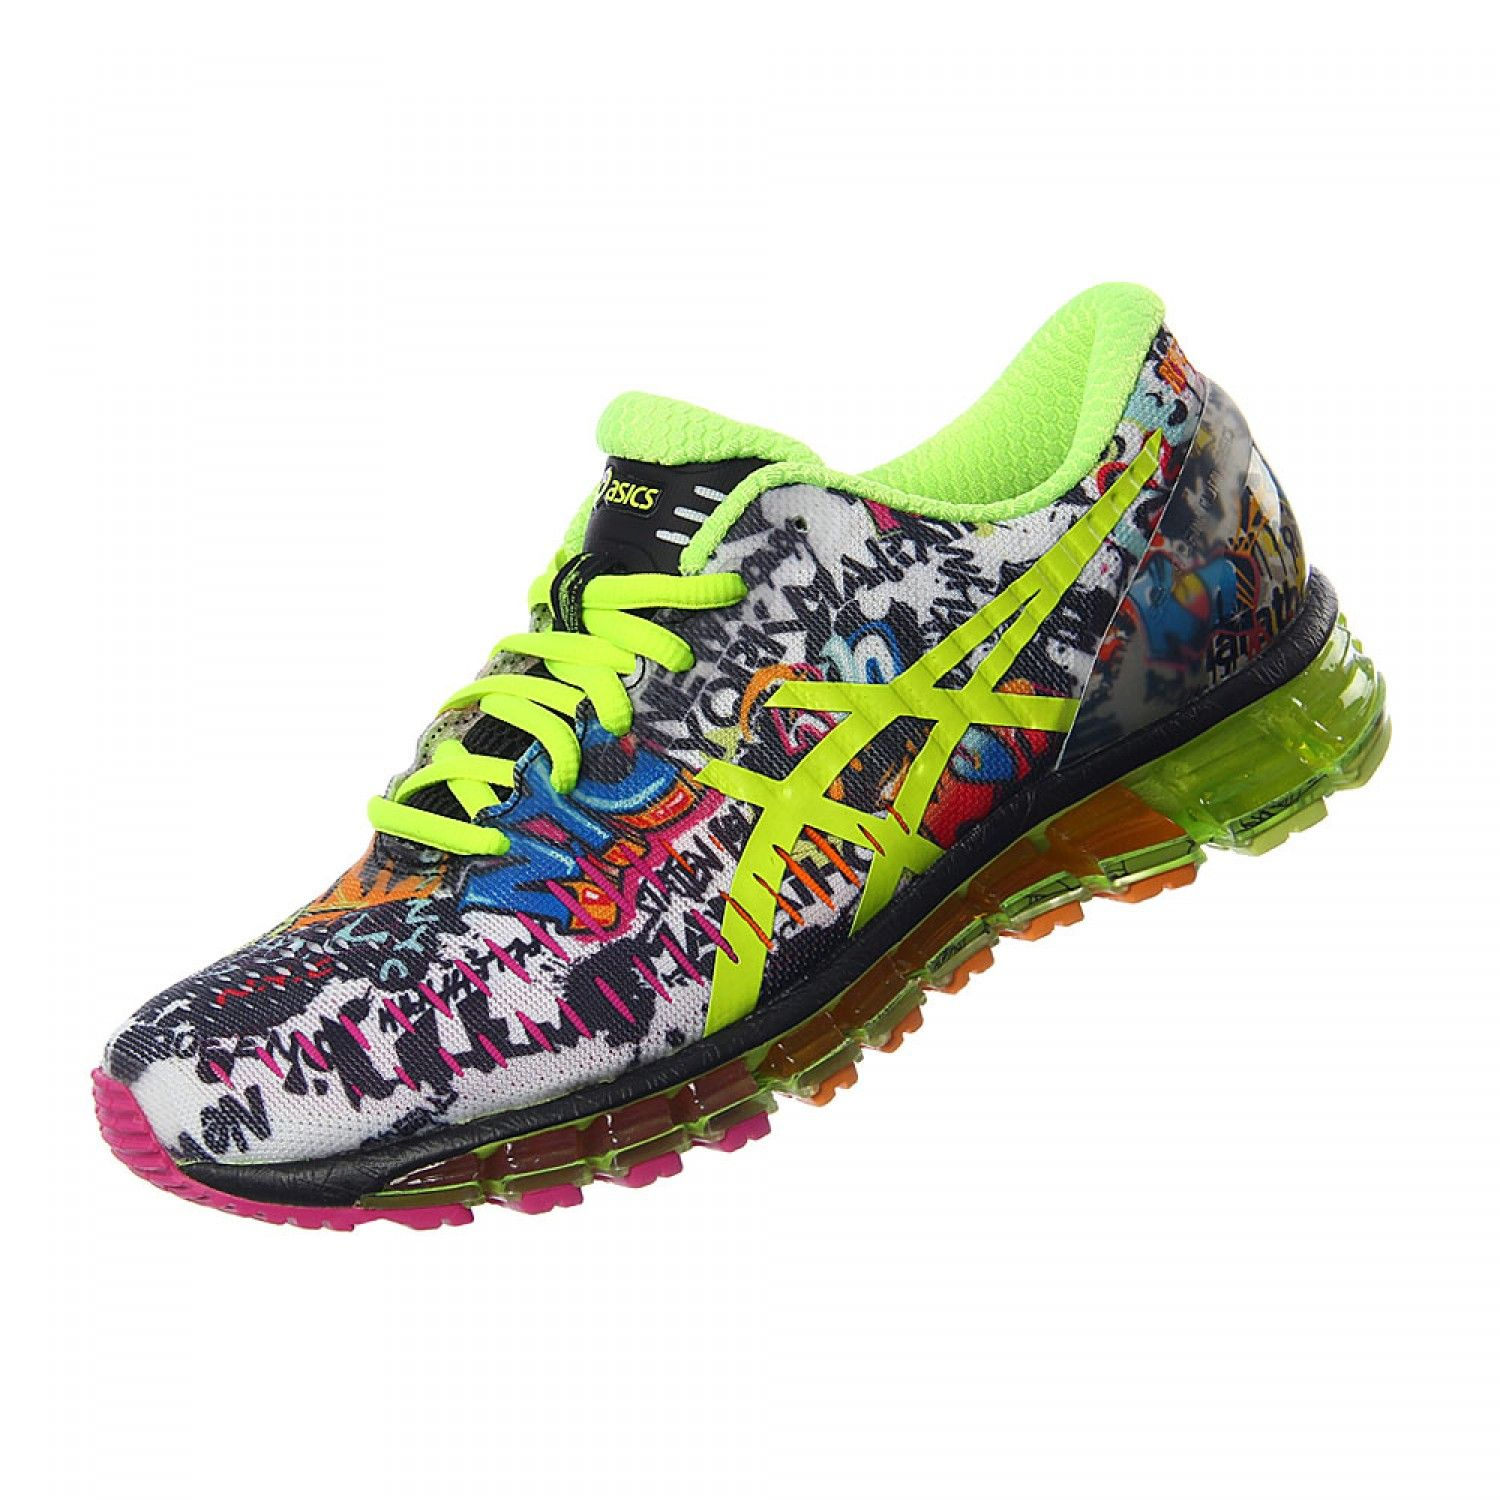 Zapatillas asics running 2014 zapatillas running asics gel - Running Shoes Asics Gel Quantum 360 Nyc Mujer Innovasport